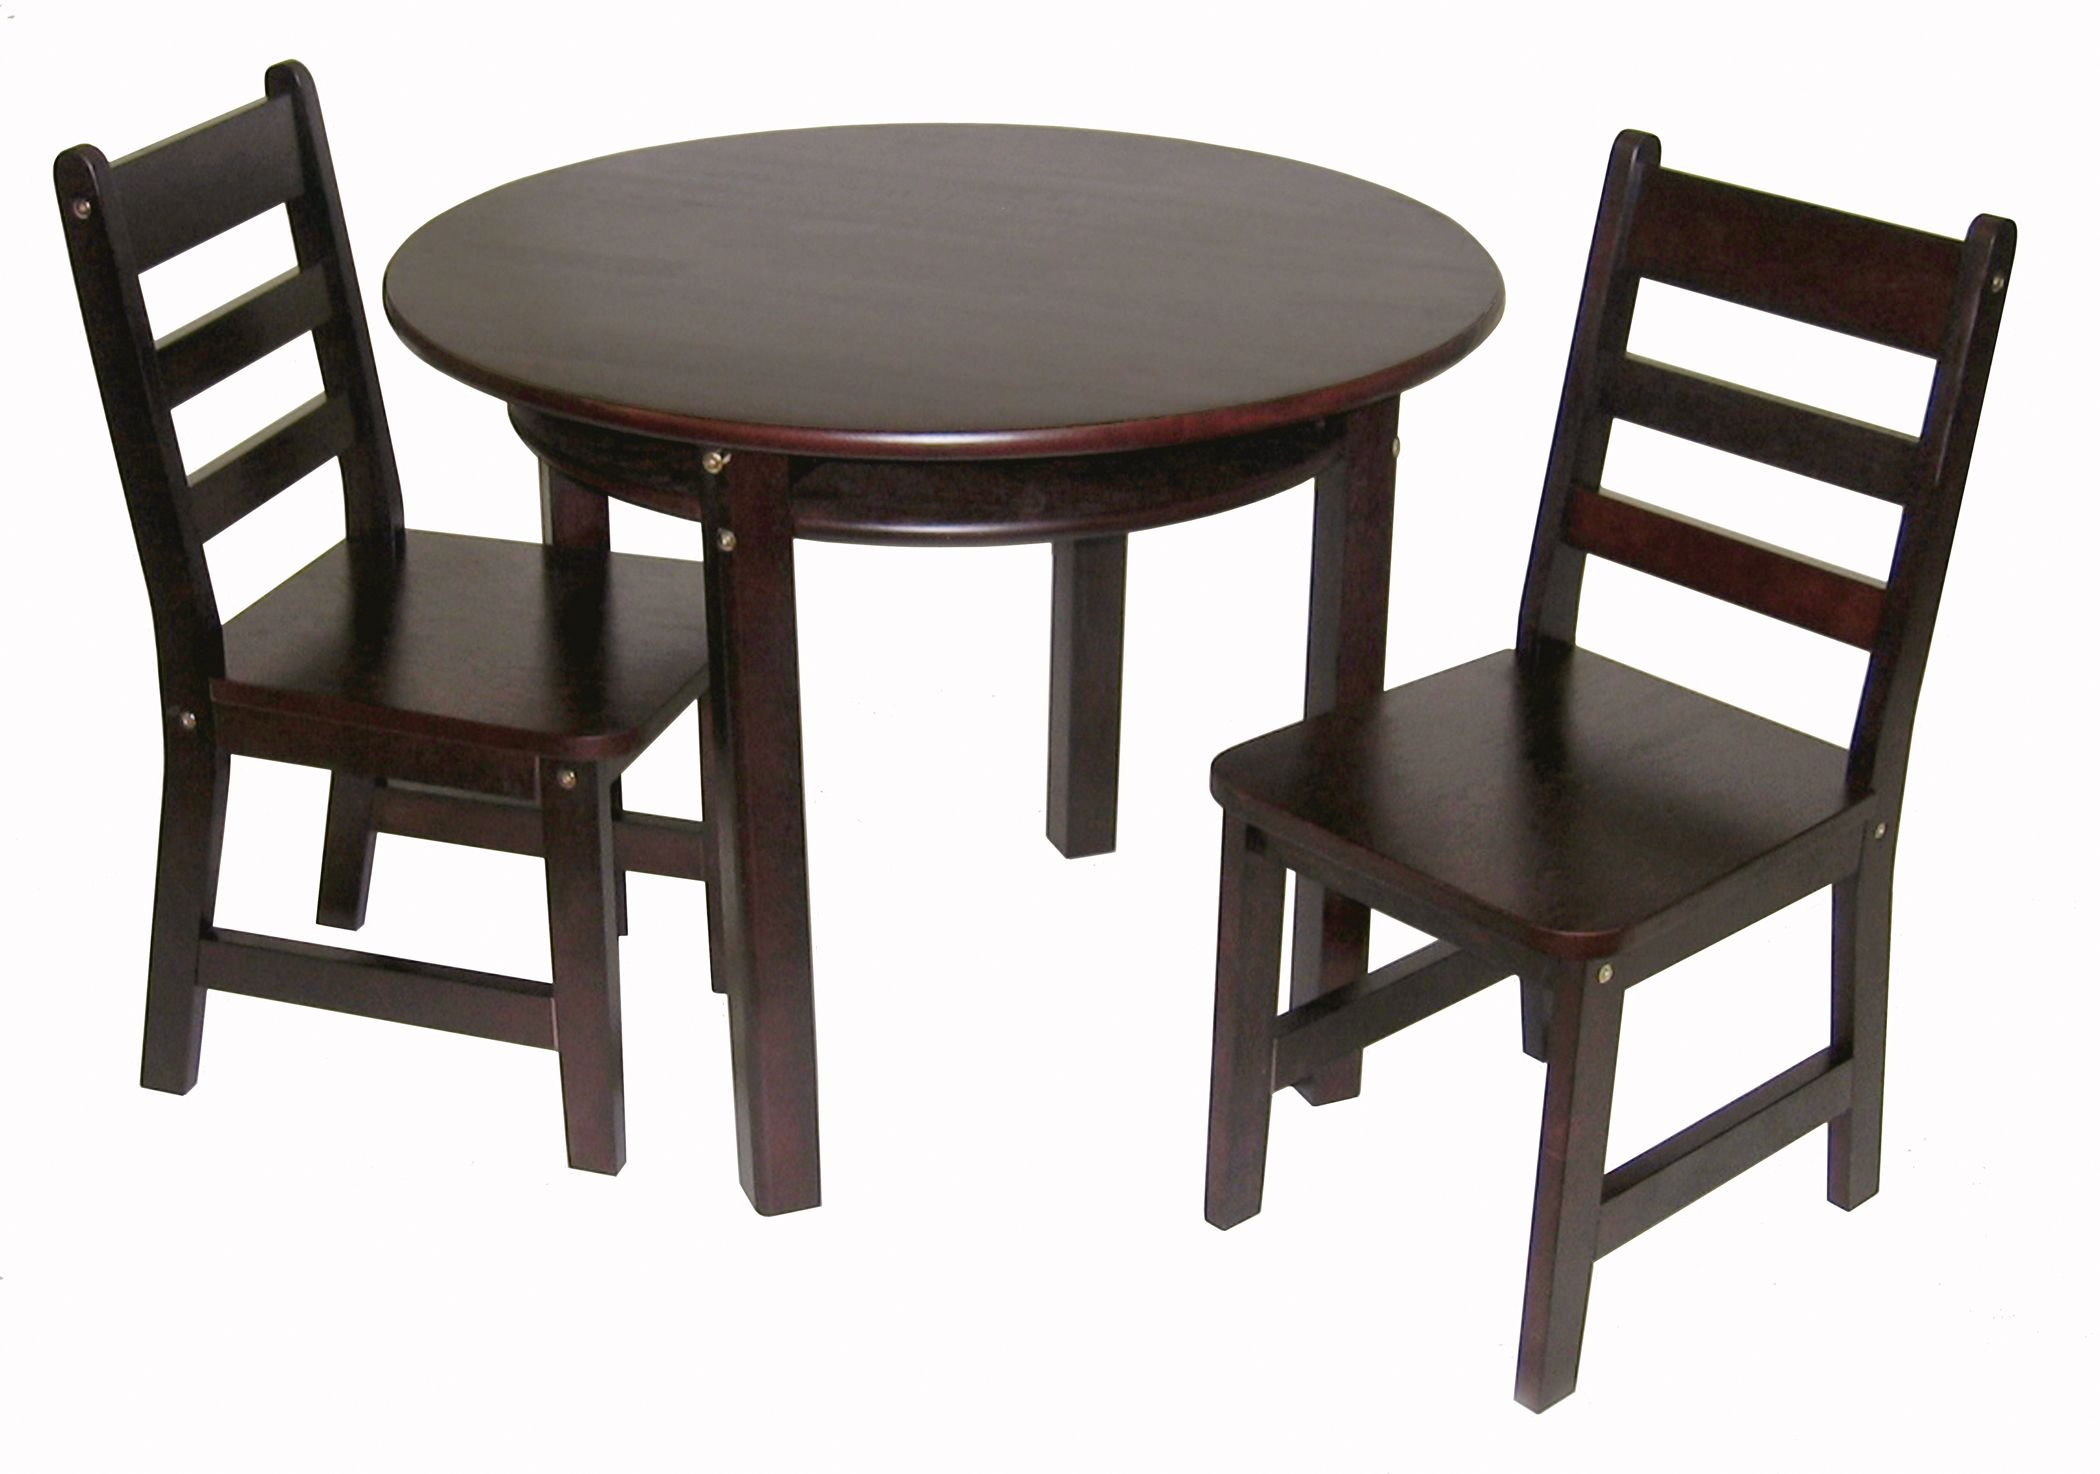 Lipper International 524E Child's Round Table with Shelf and 2 Chairs, Espresso Finish